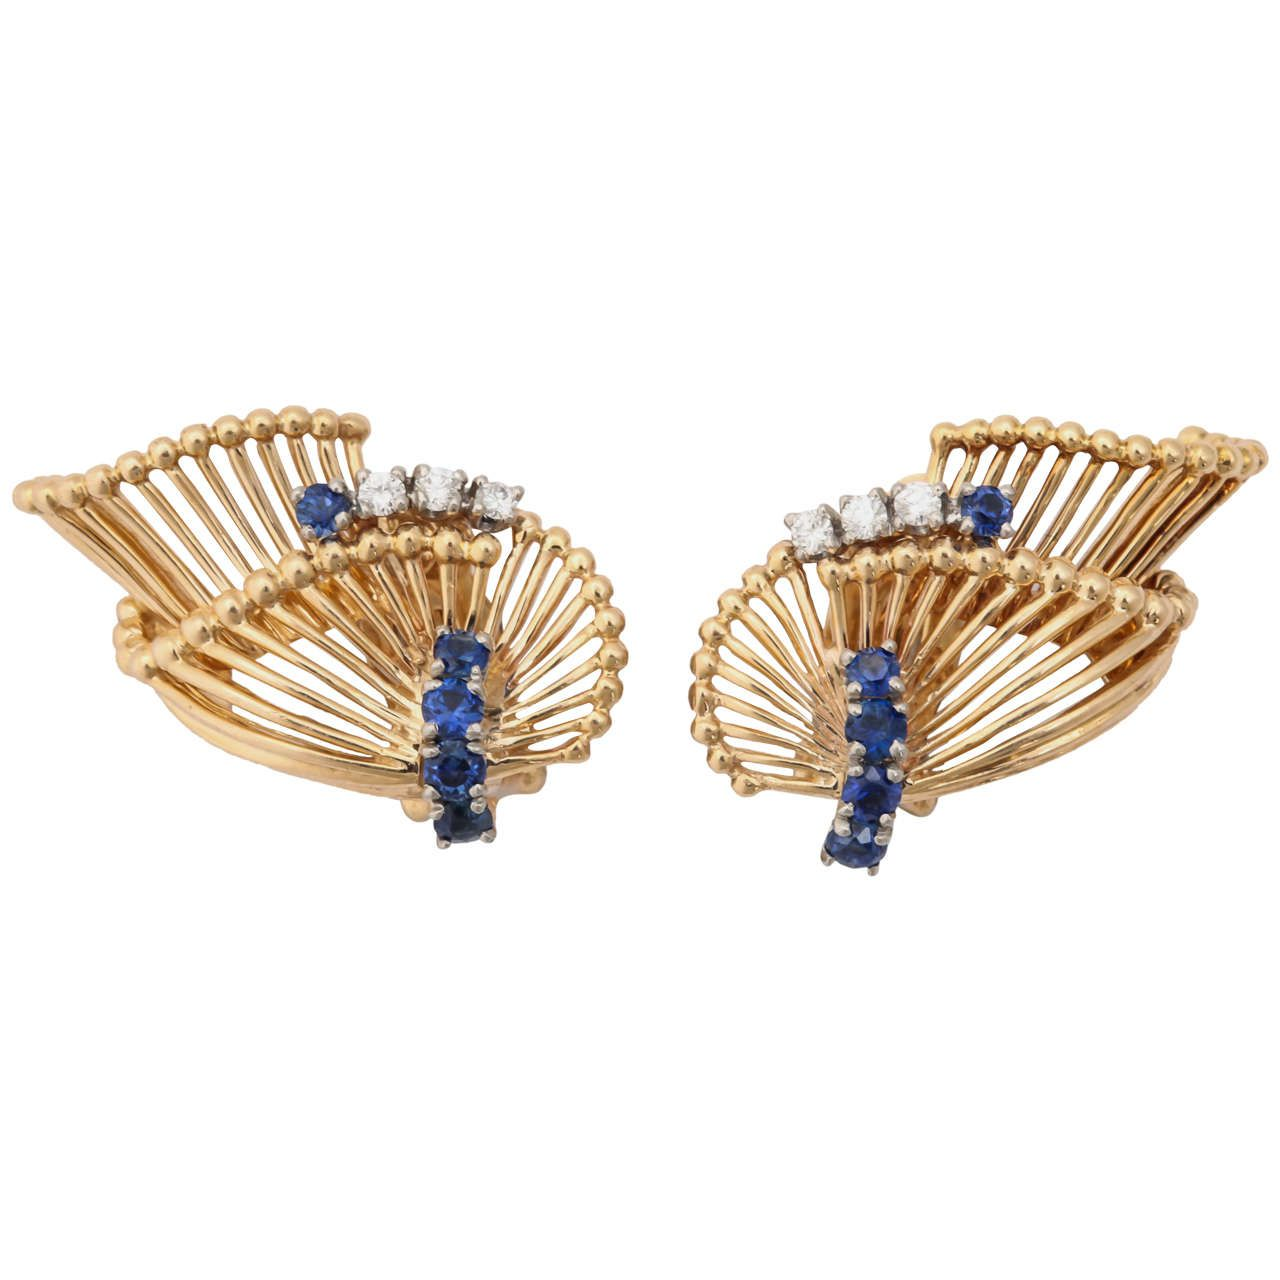 Tiffany & Co. Sapphire Diamond Gold Ear Clips. 14k yellow gold open work stylized leaf earrings, 10 sapphires .50 carat and 6 diamonds 0.20 carat, c 1955